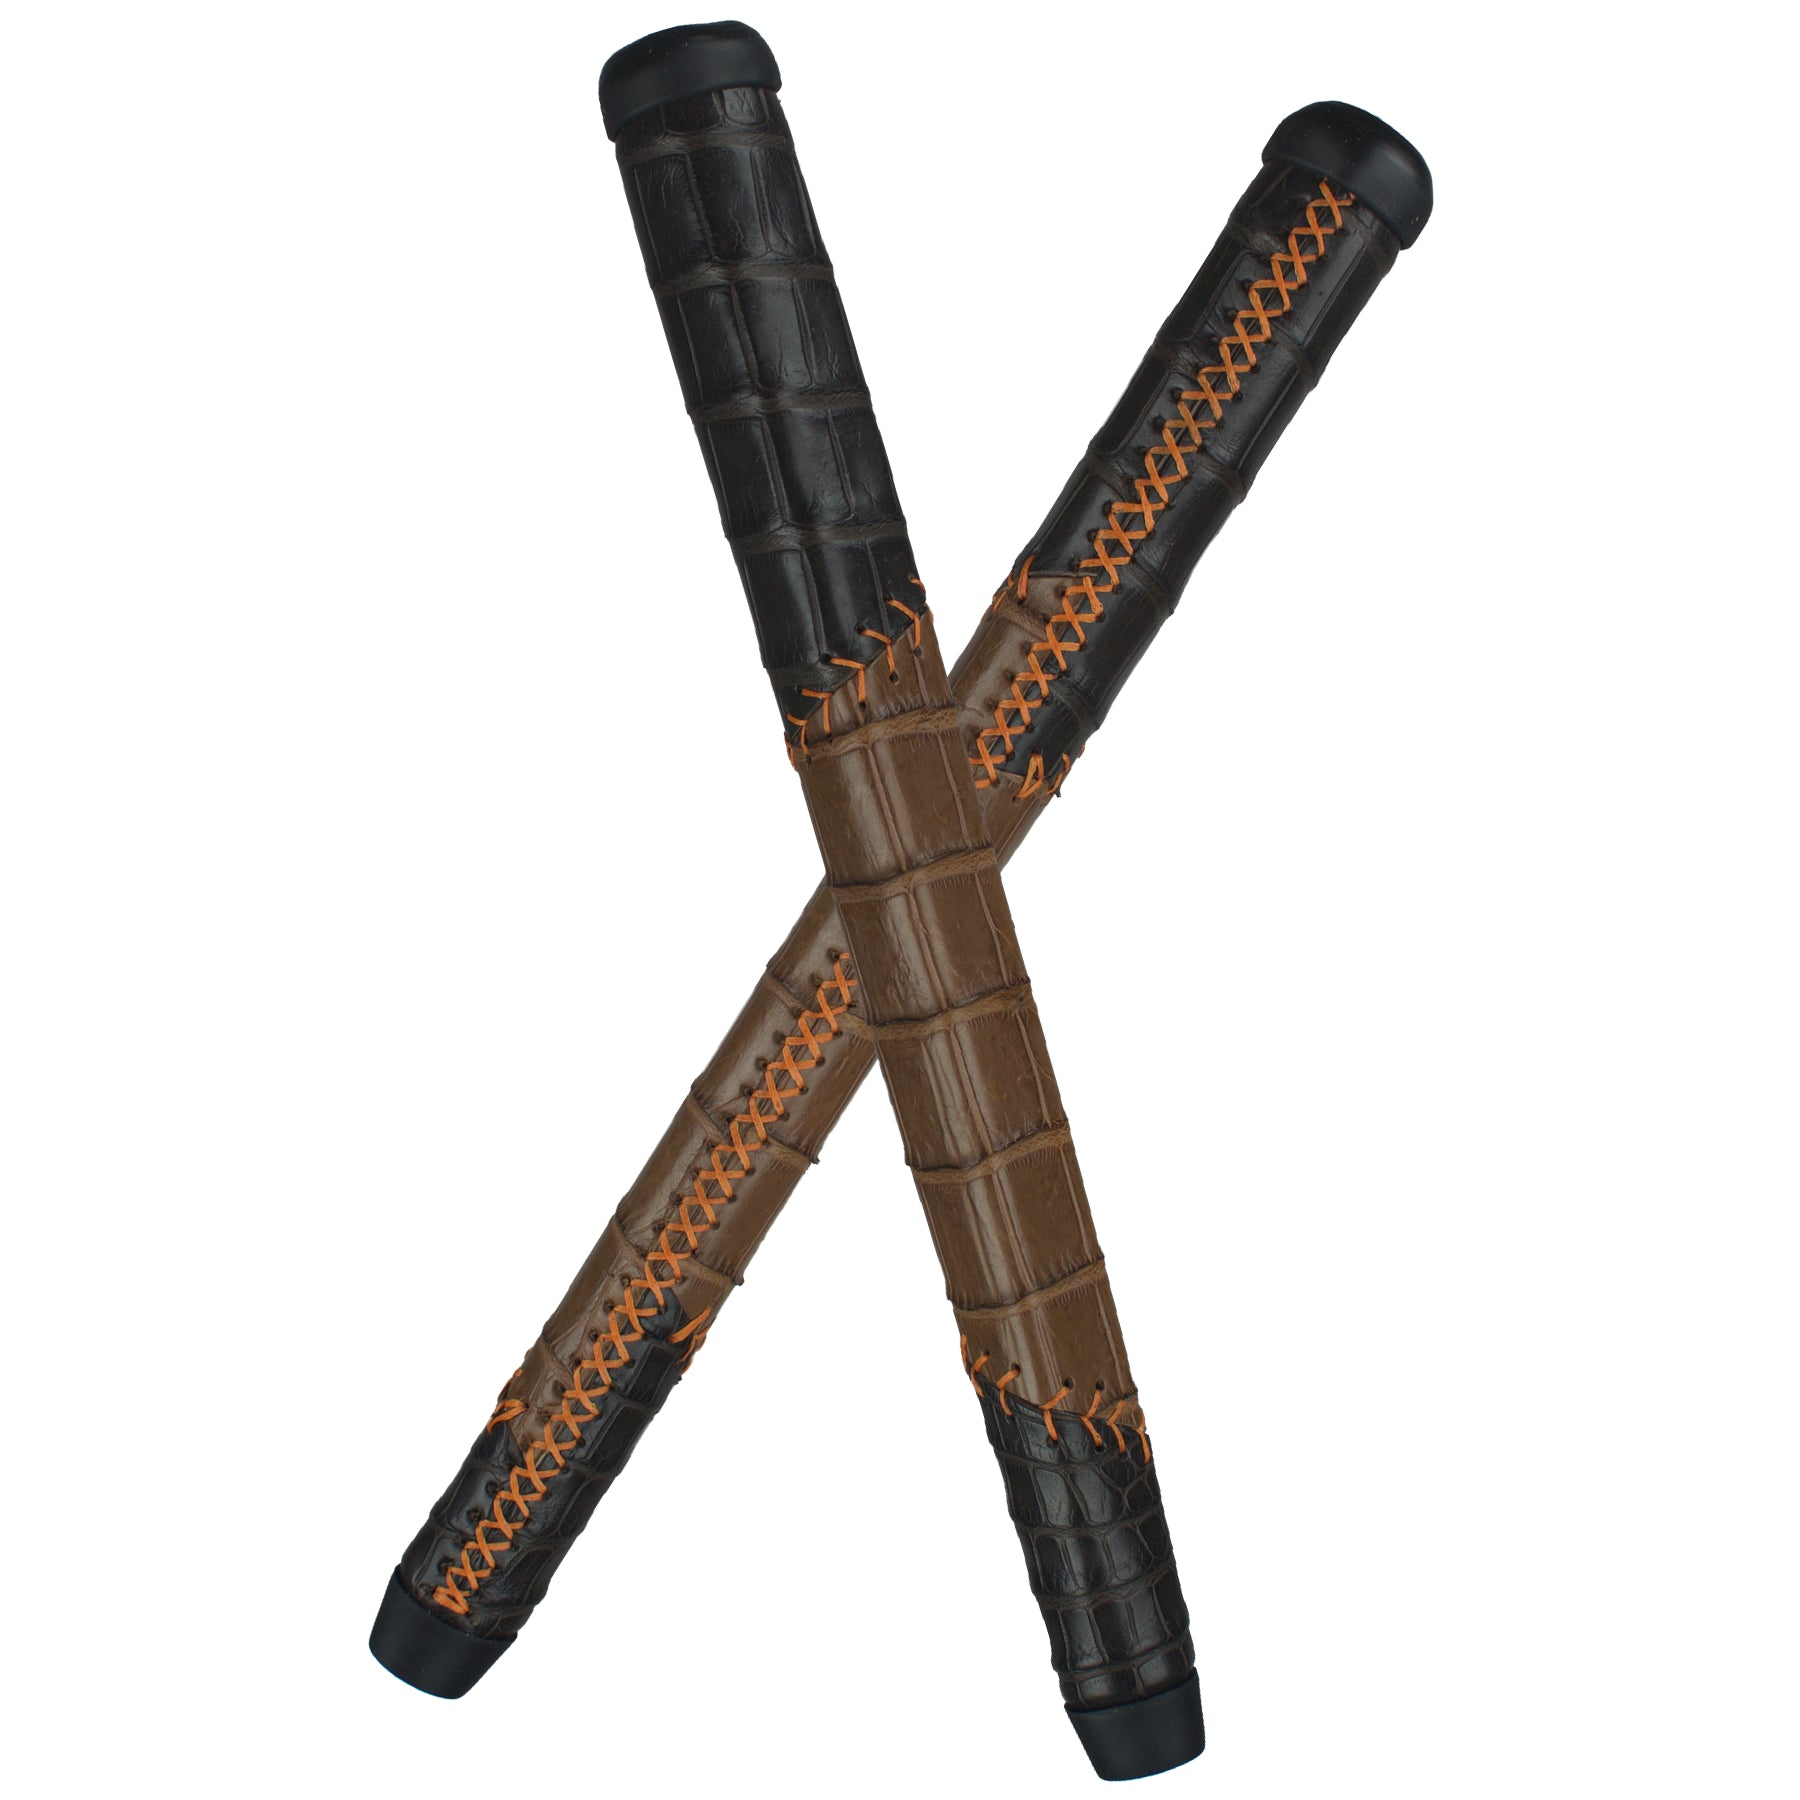 Stitchworks Exotic Putter Grip